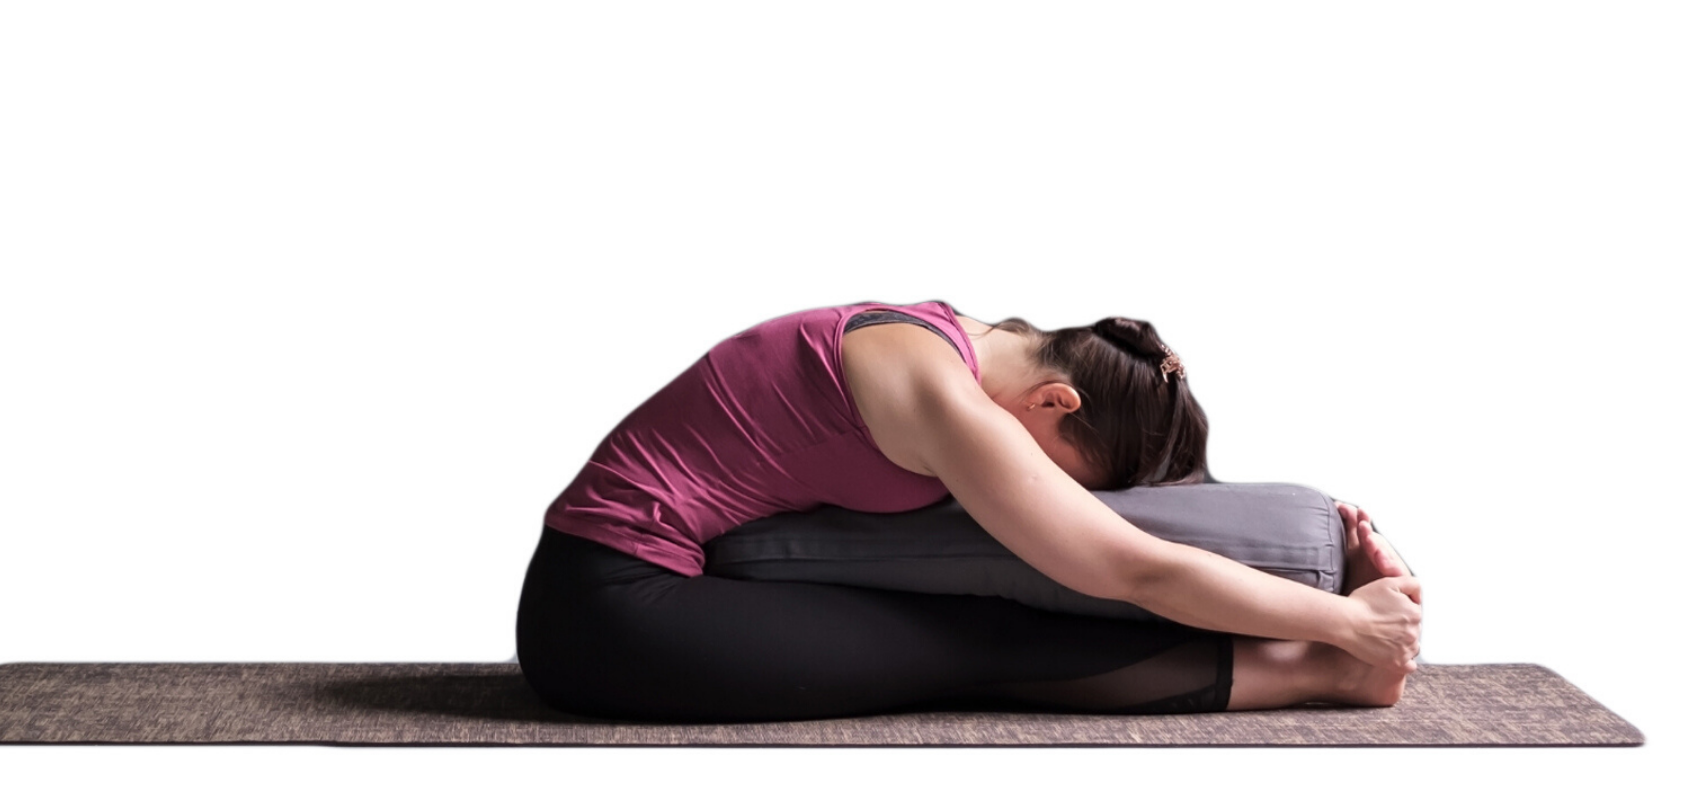 Female yoga student practicing seated forward bend (paschimottanasana)